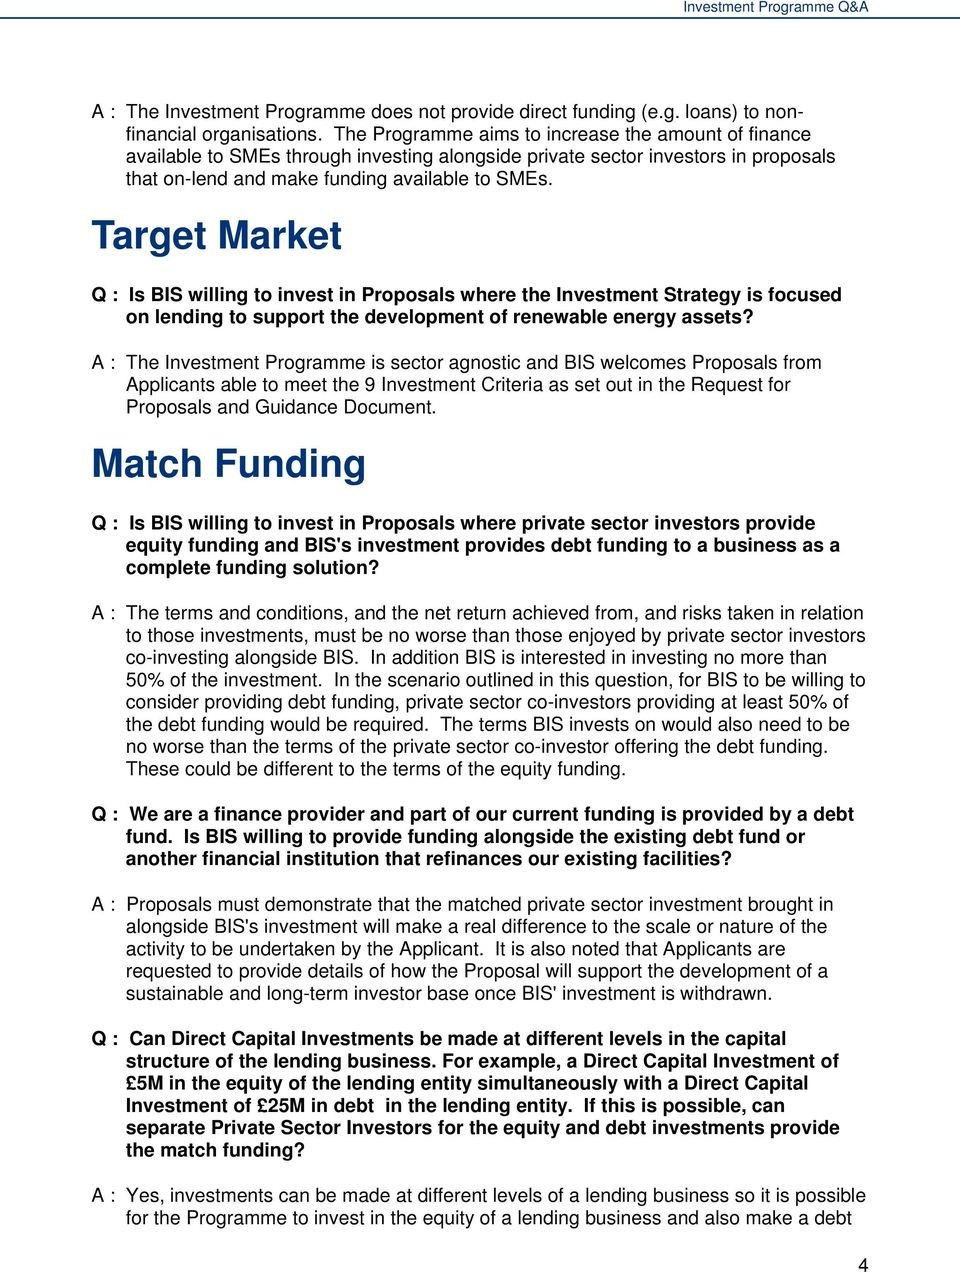 Target Market Q : Is BIS willing to invest in Proposals where the Investment Strategy is focused on lending to support the development of renewable energy assets?